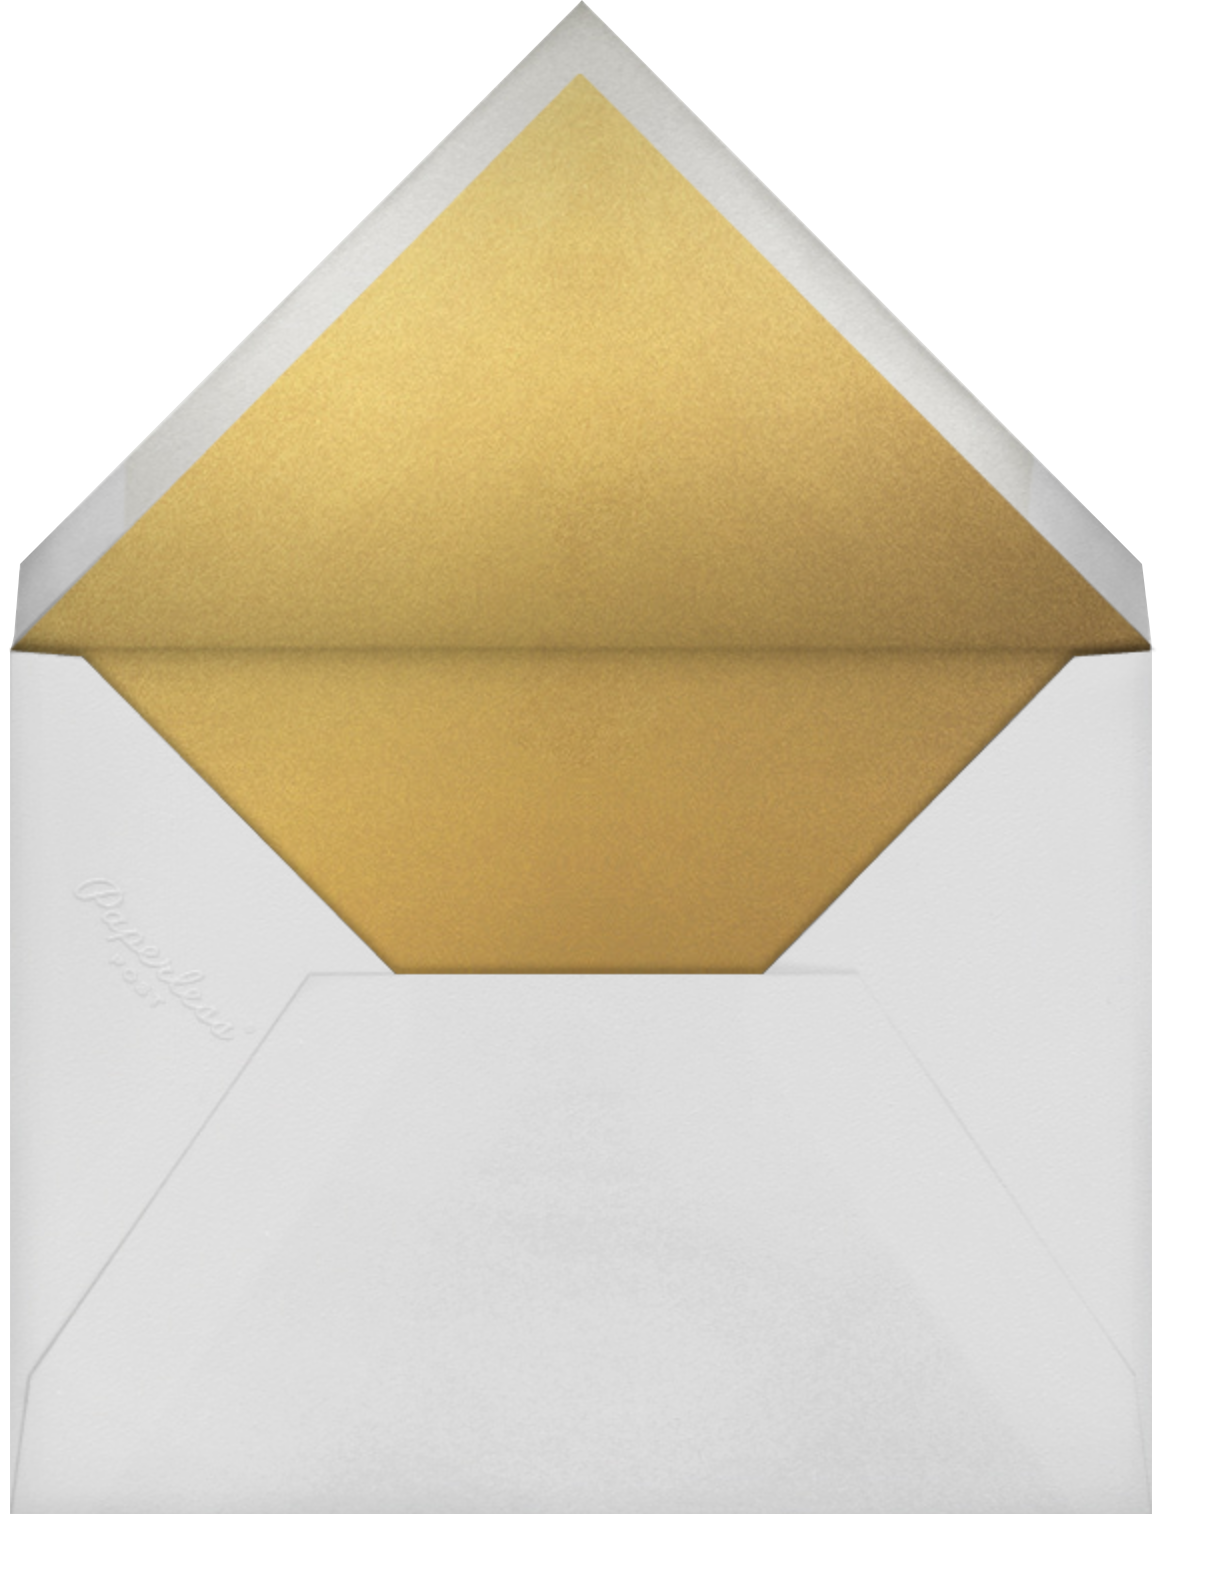 Palmier I (Stationery) - Gold - Paperless Post - Wedding - envelope back